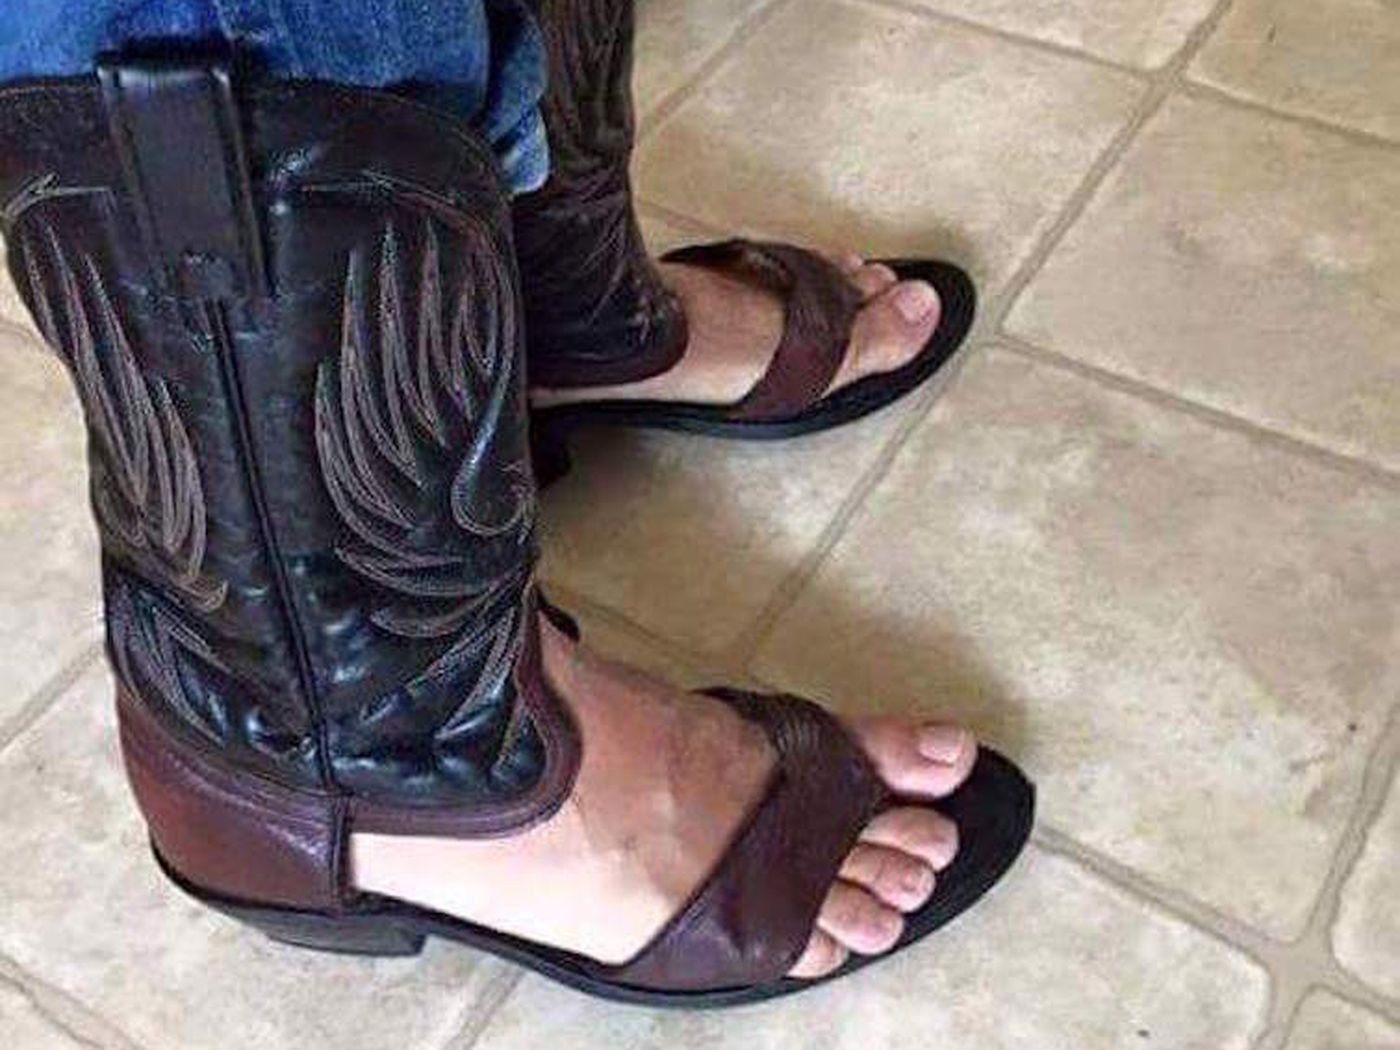 10 Ugliest Pairs Of Women's Shoes Ever